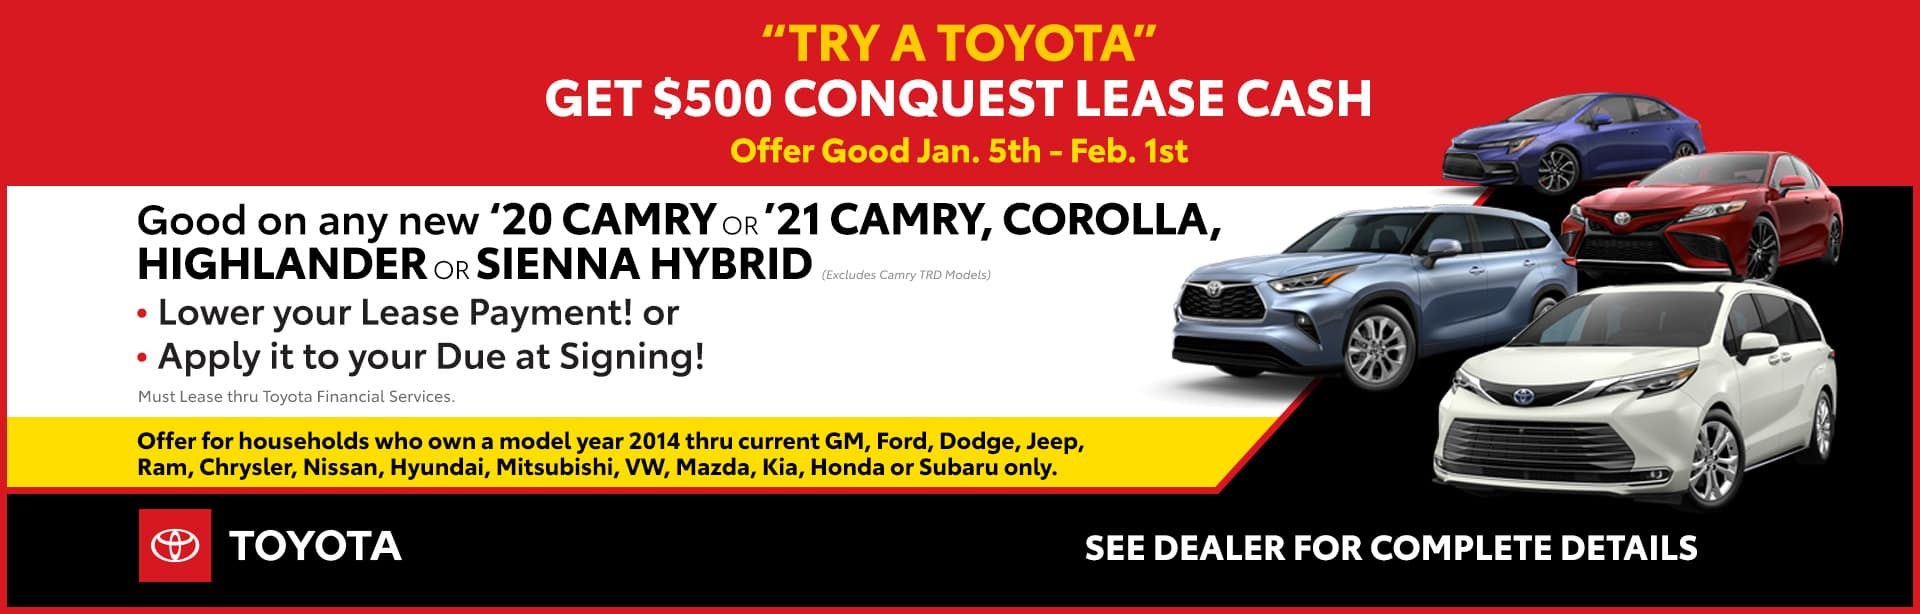 Conquest Lease Cash